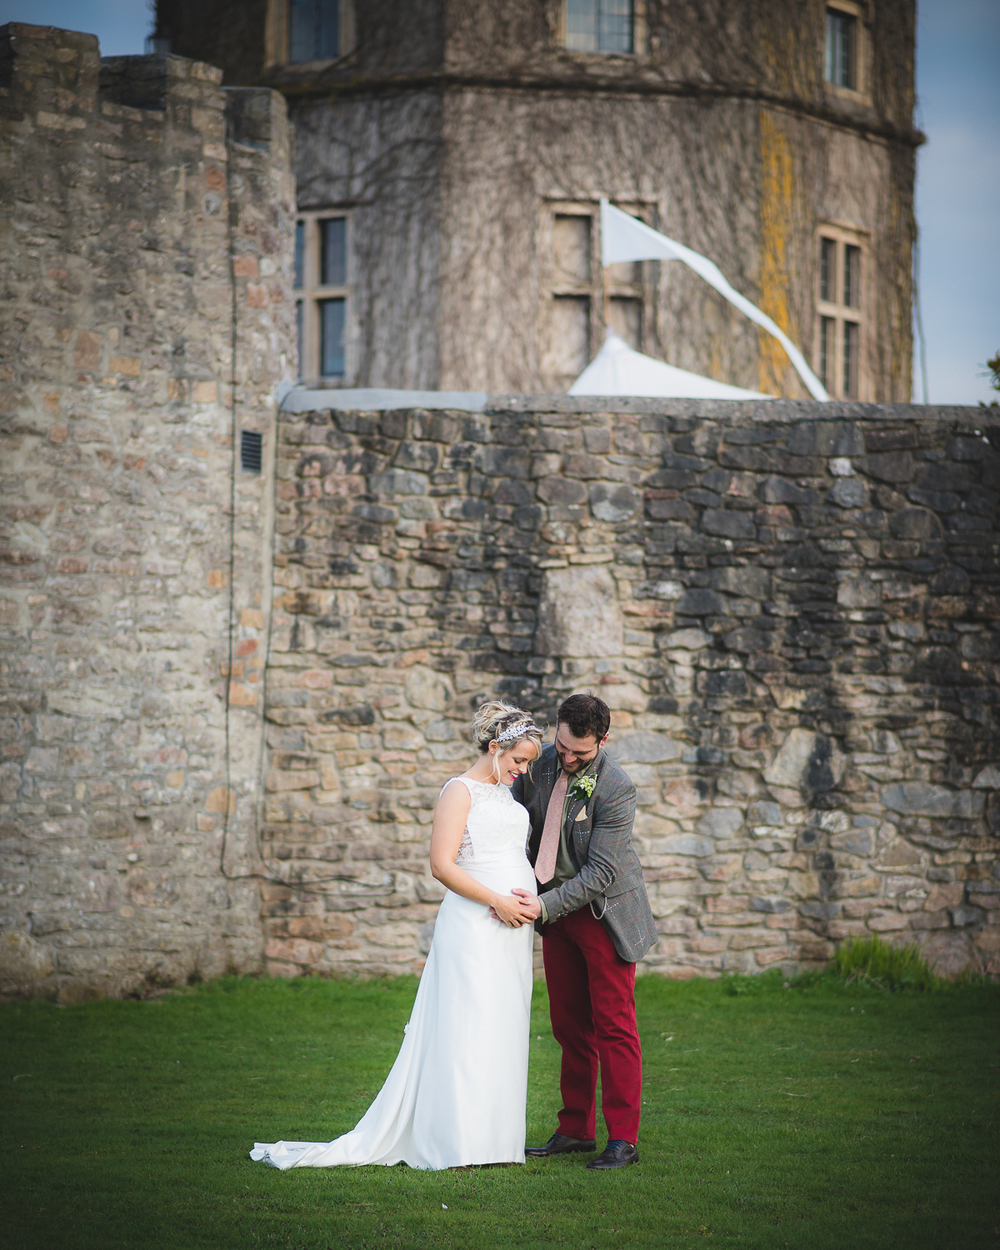 somerset-wedding-photographer-walton-castle-11.jpg